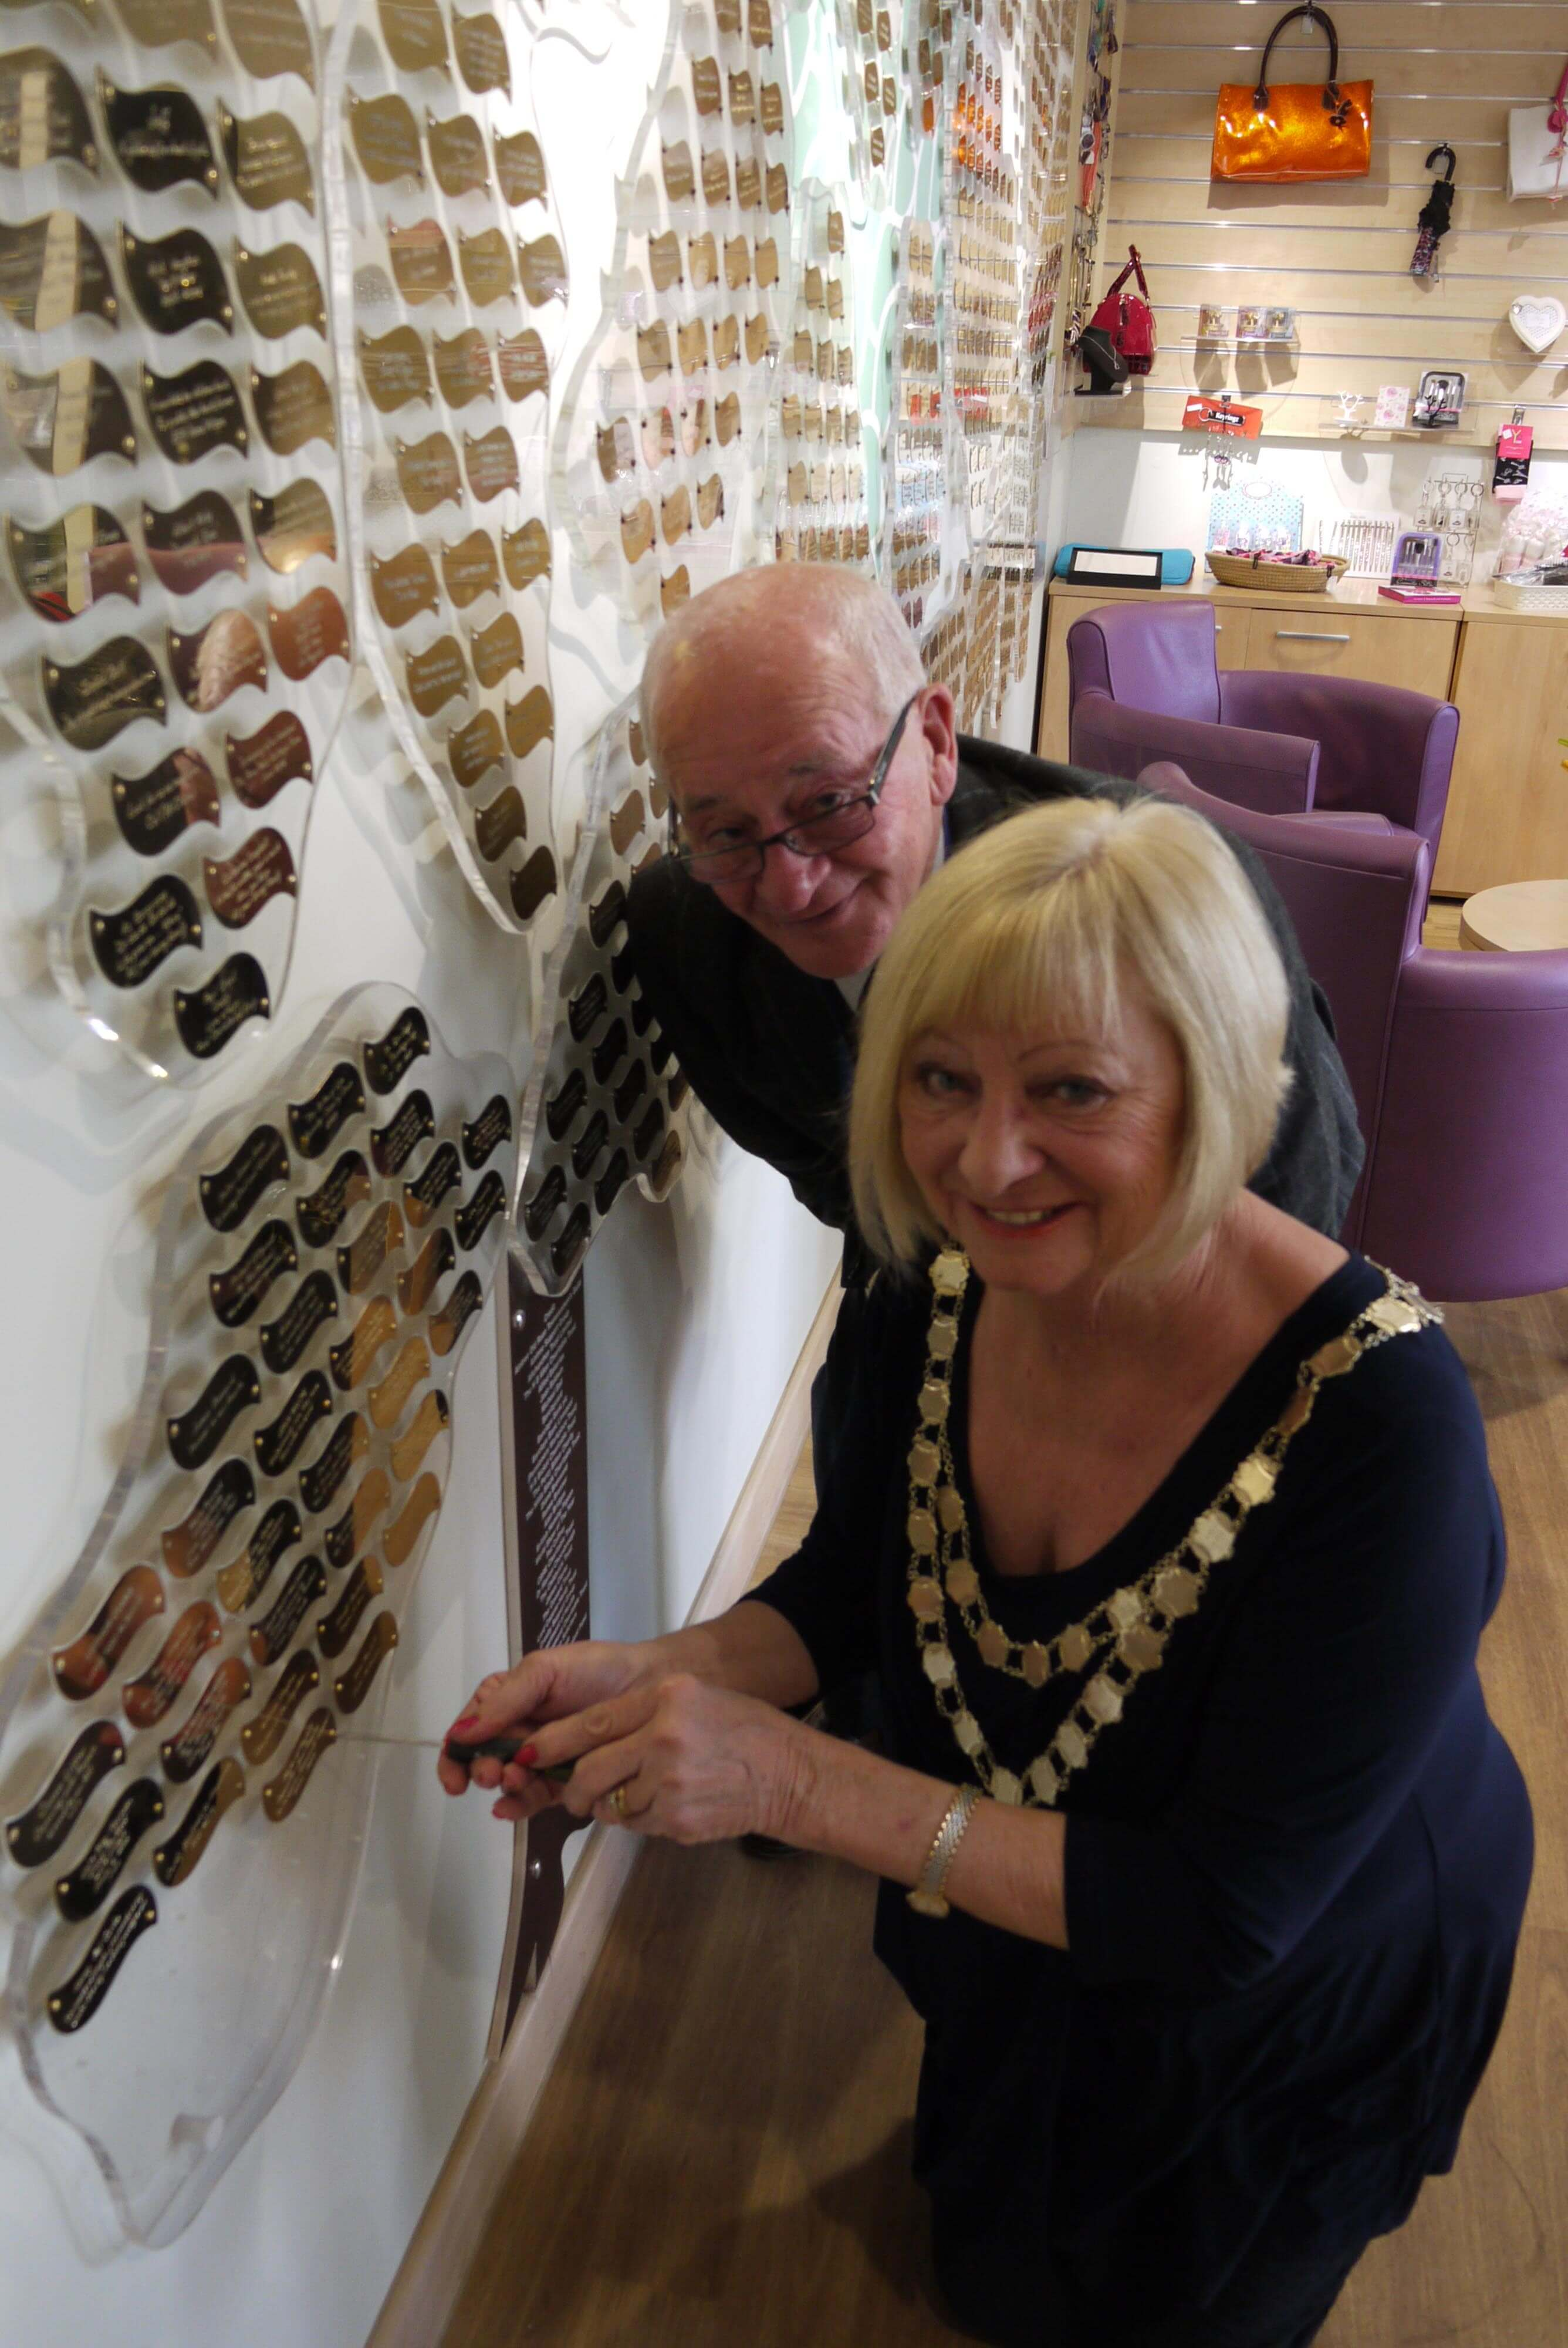 Mayor of Maghull Cllr Joan Deegan and consort Cllr Rod Deegan add a golden leaf to Woodland's Hospice fundraising tree after raising nearly £10,000 for the charity.